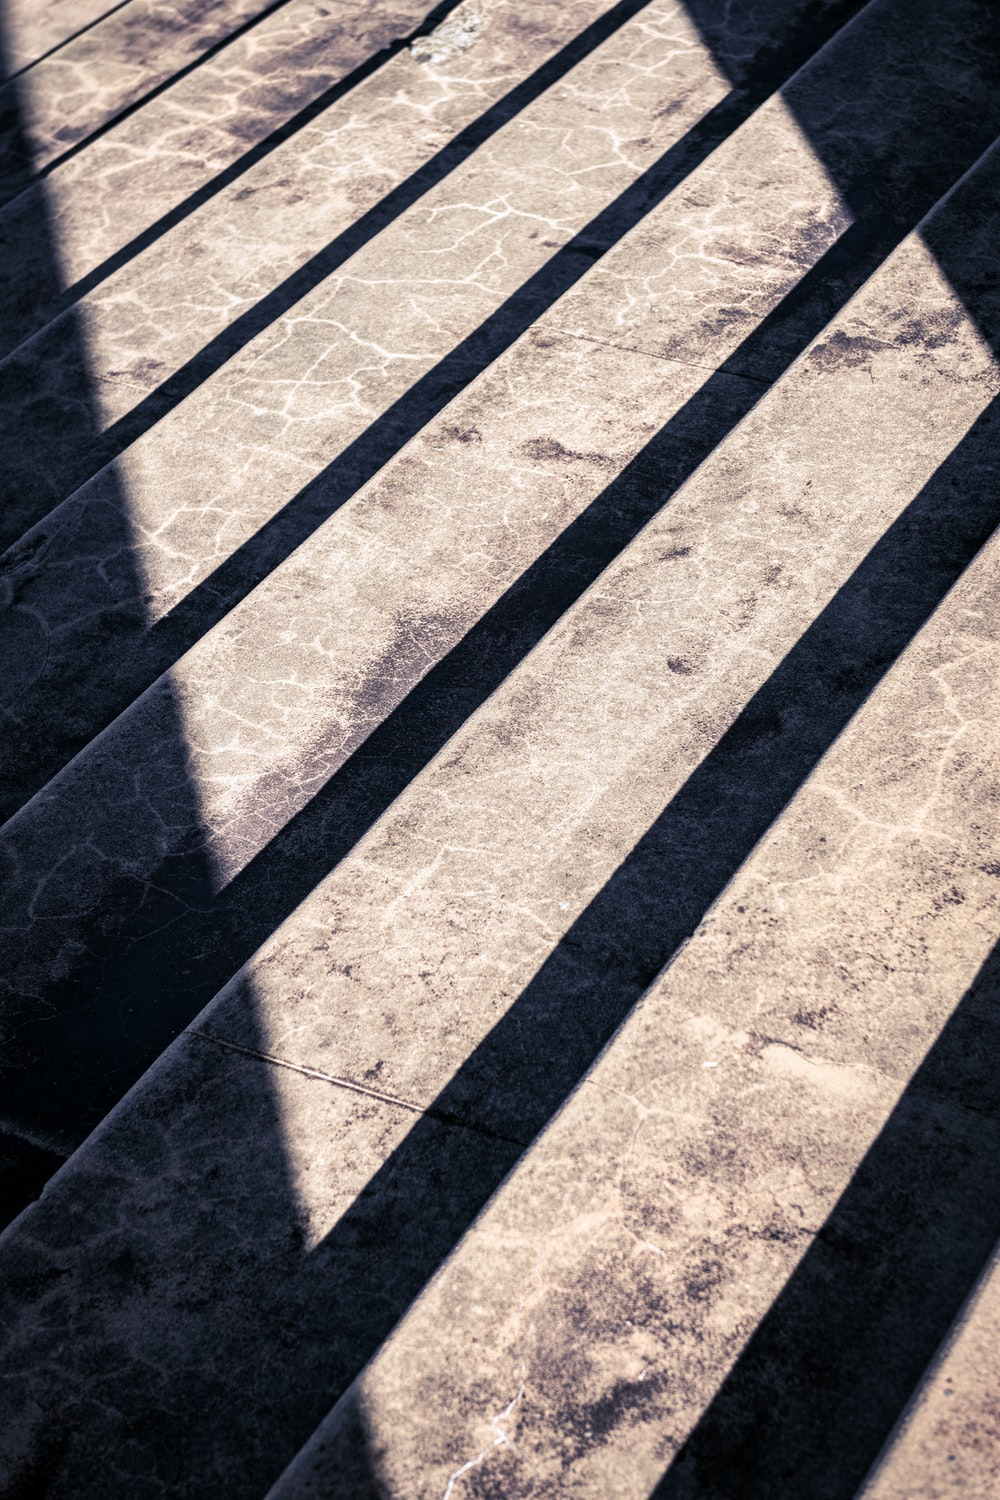 shadow of person on gray concrete pavement